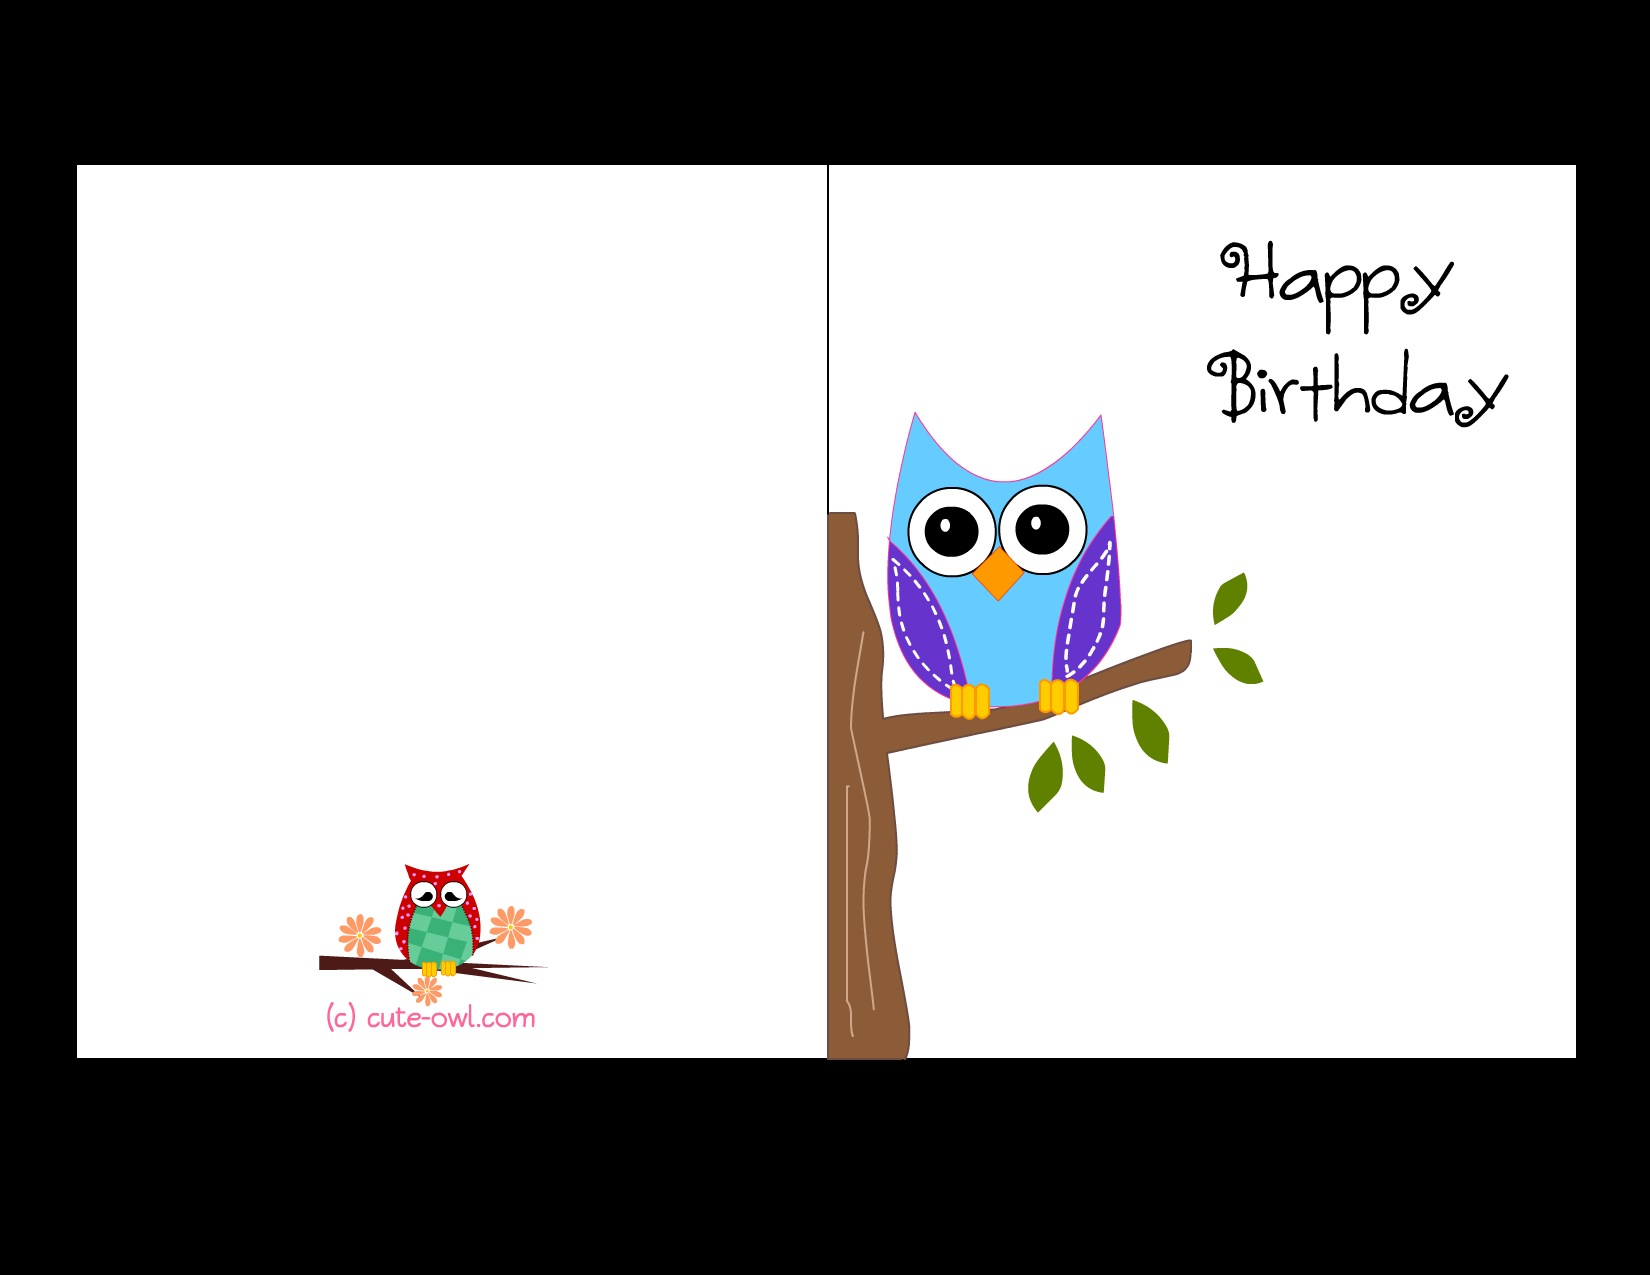 free birthday cards to print out ; happy-birthday-cards-to-print-print-out-birthday-cards-free-print-out-birthday-cards-free